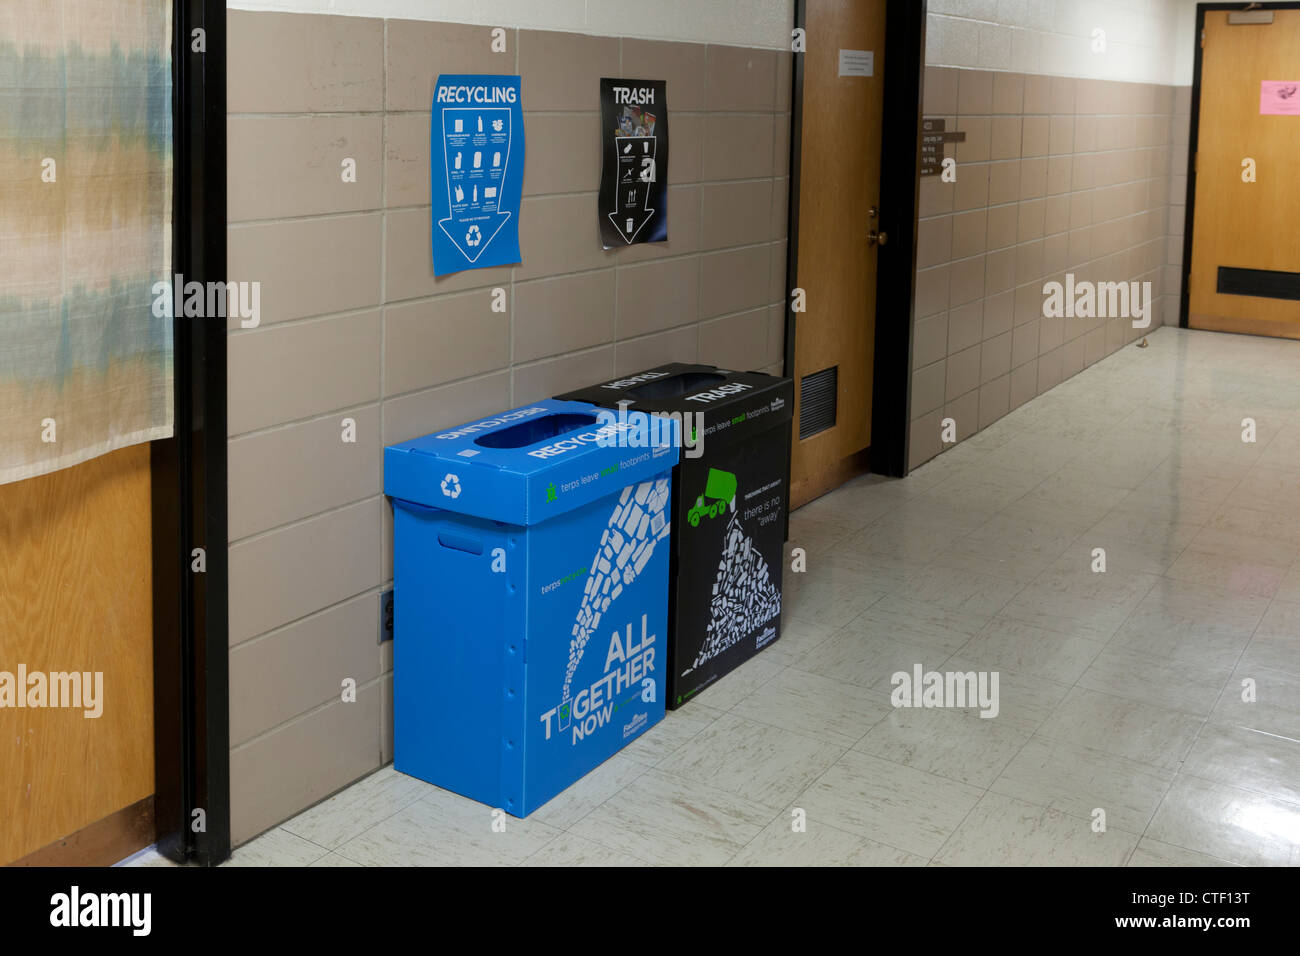 Recycle bins placed in the hallway - Stock Image